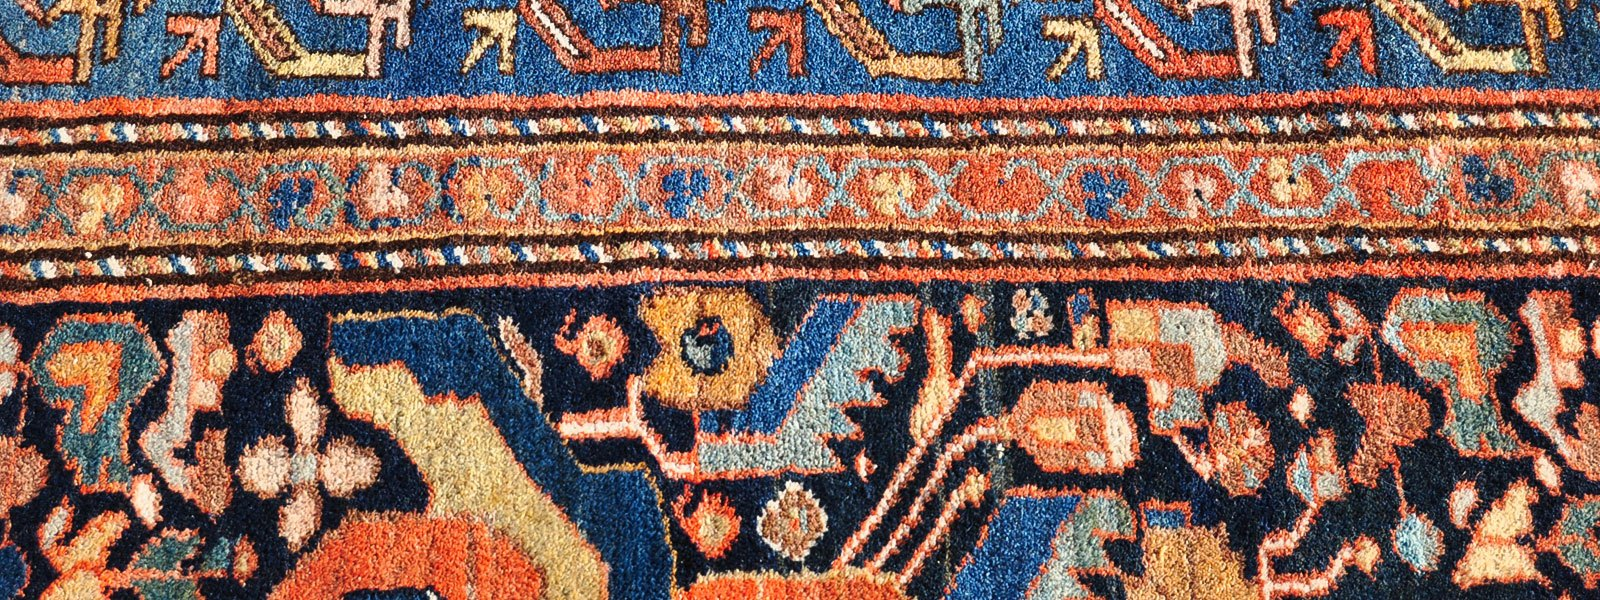 Persian Heriz Rug from Ahar — 12 ft. 5 in. by 9 ft. 5 in. — $1,350 SOLD